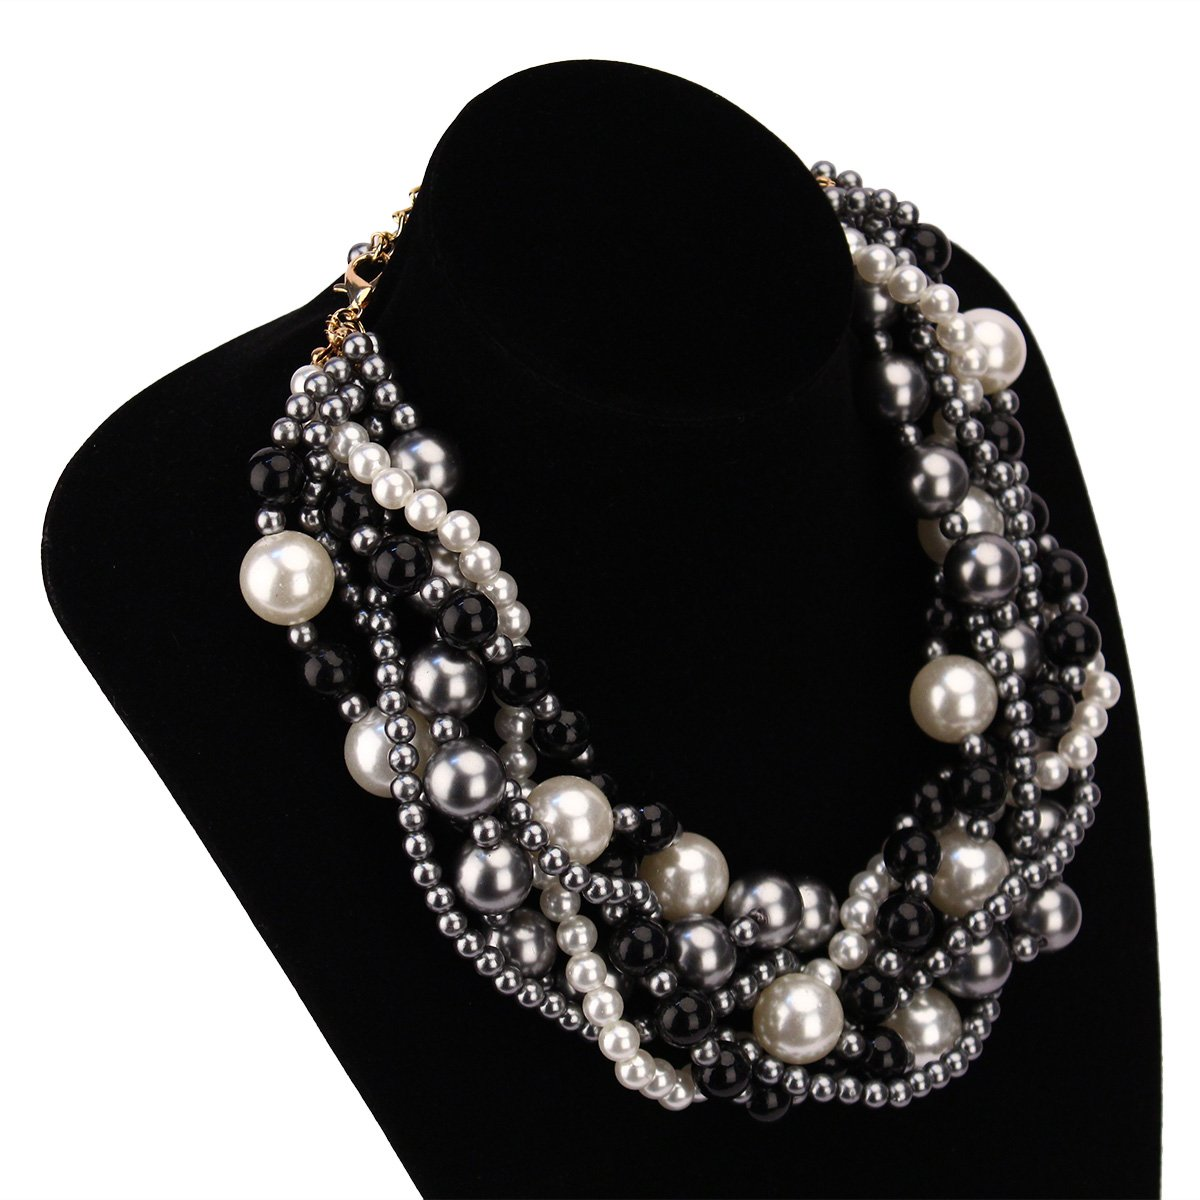 MeliMe Women's Imitation Pearl Twisty Chunky Bib Necklace Pearl Chokers for Wedding Party by MeliMe (Image #2)